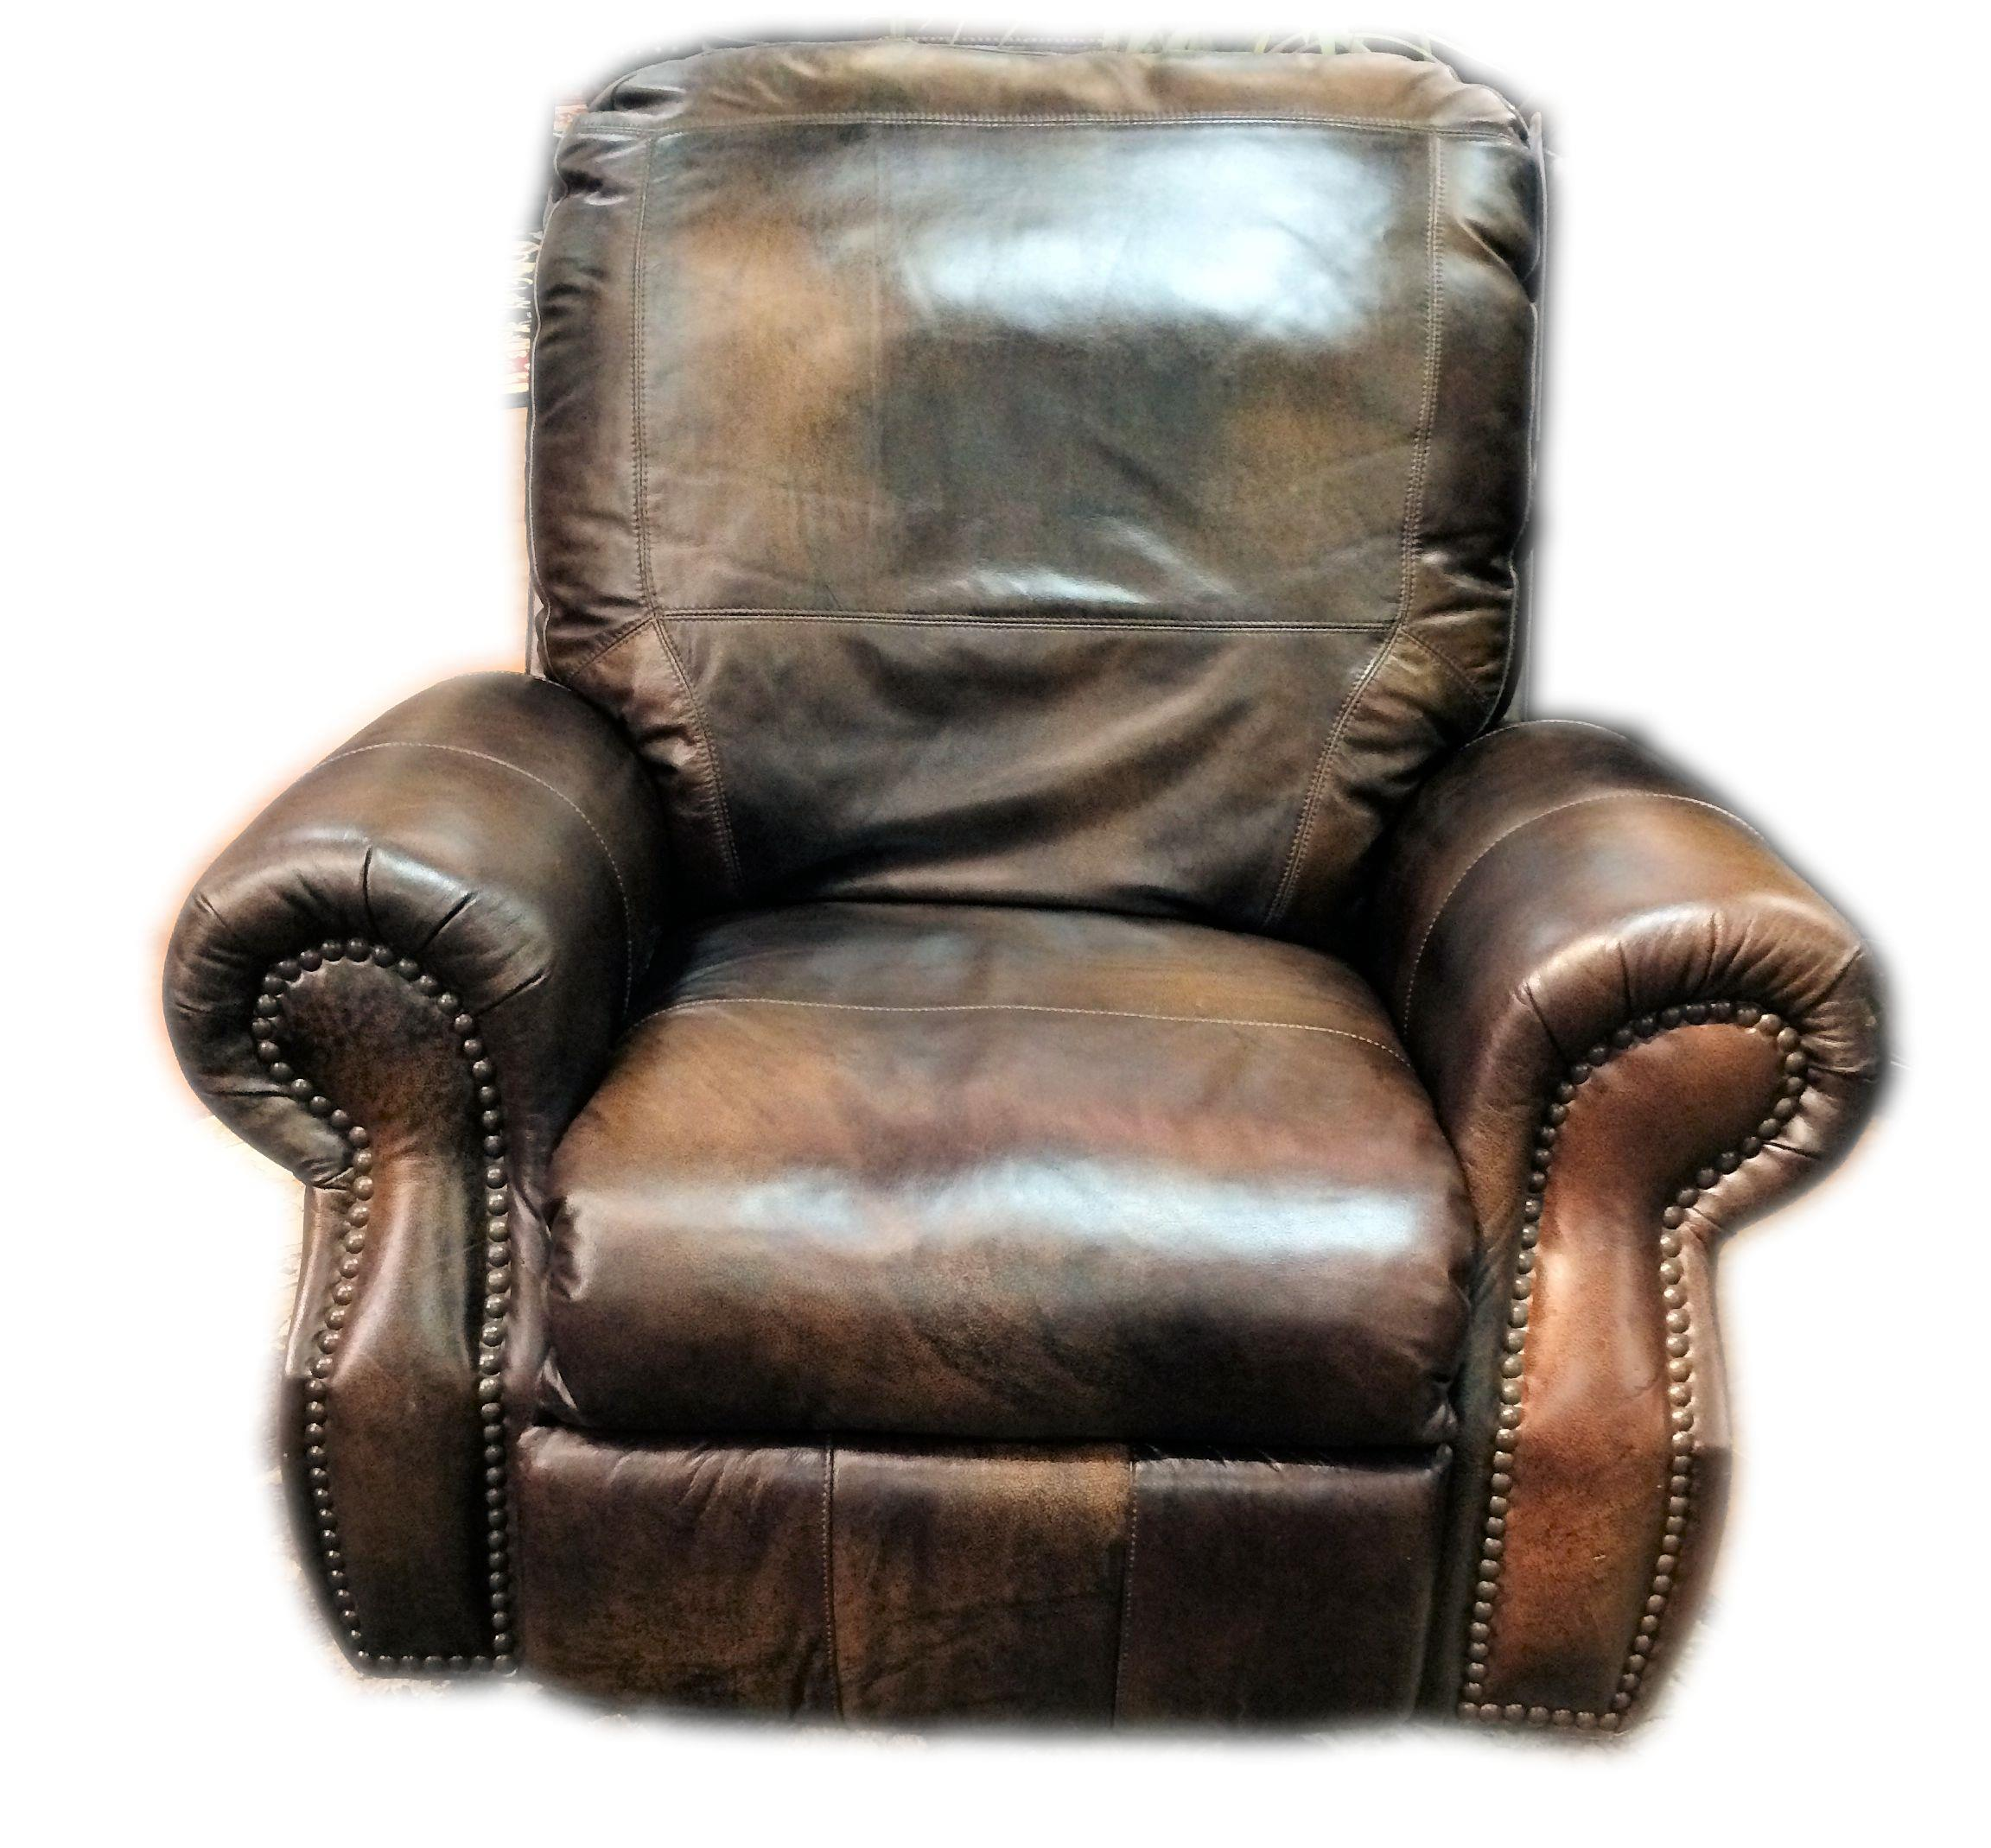 view angled gray reclined leather recliner gallery rockefeller quarter